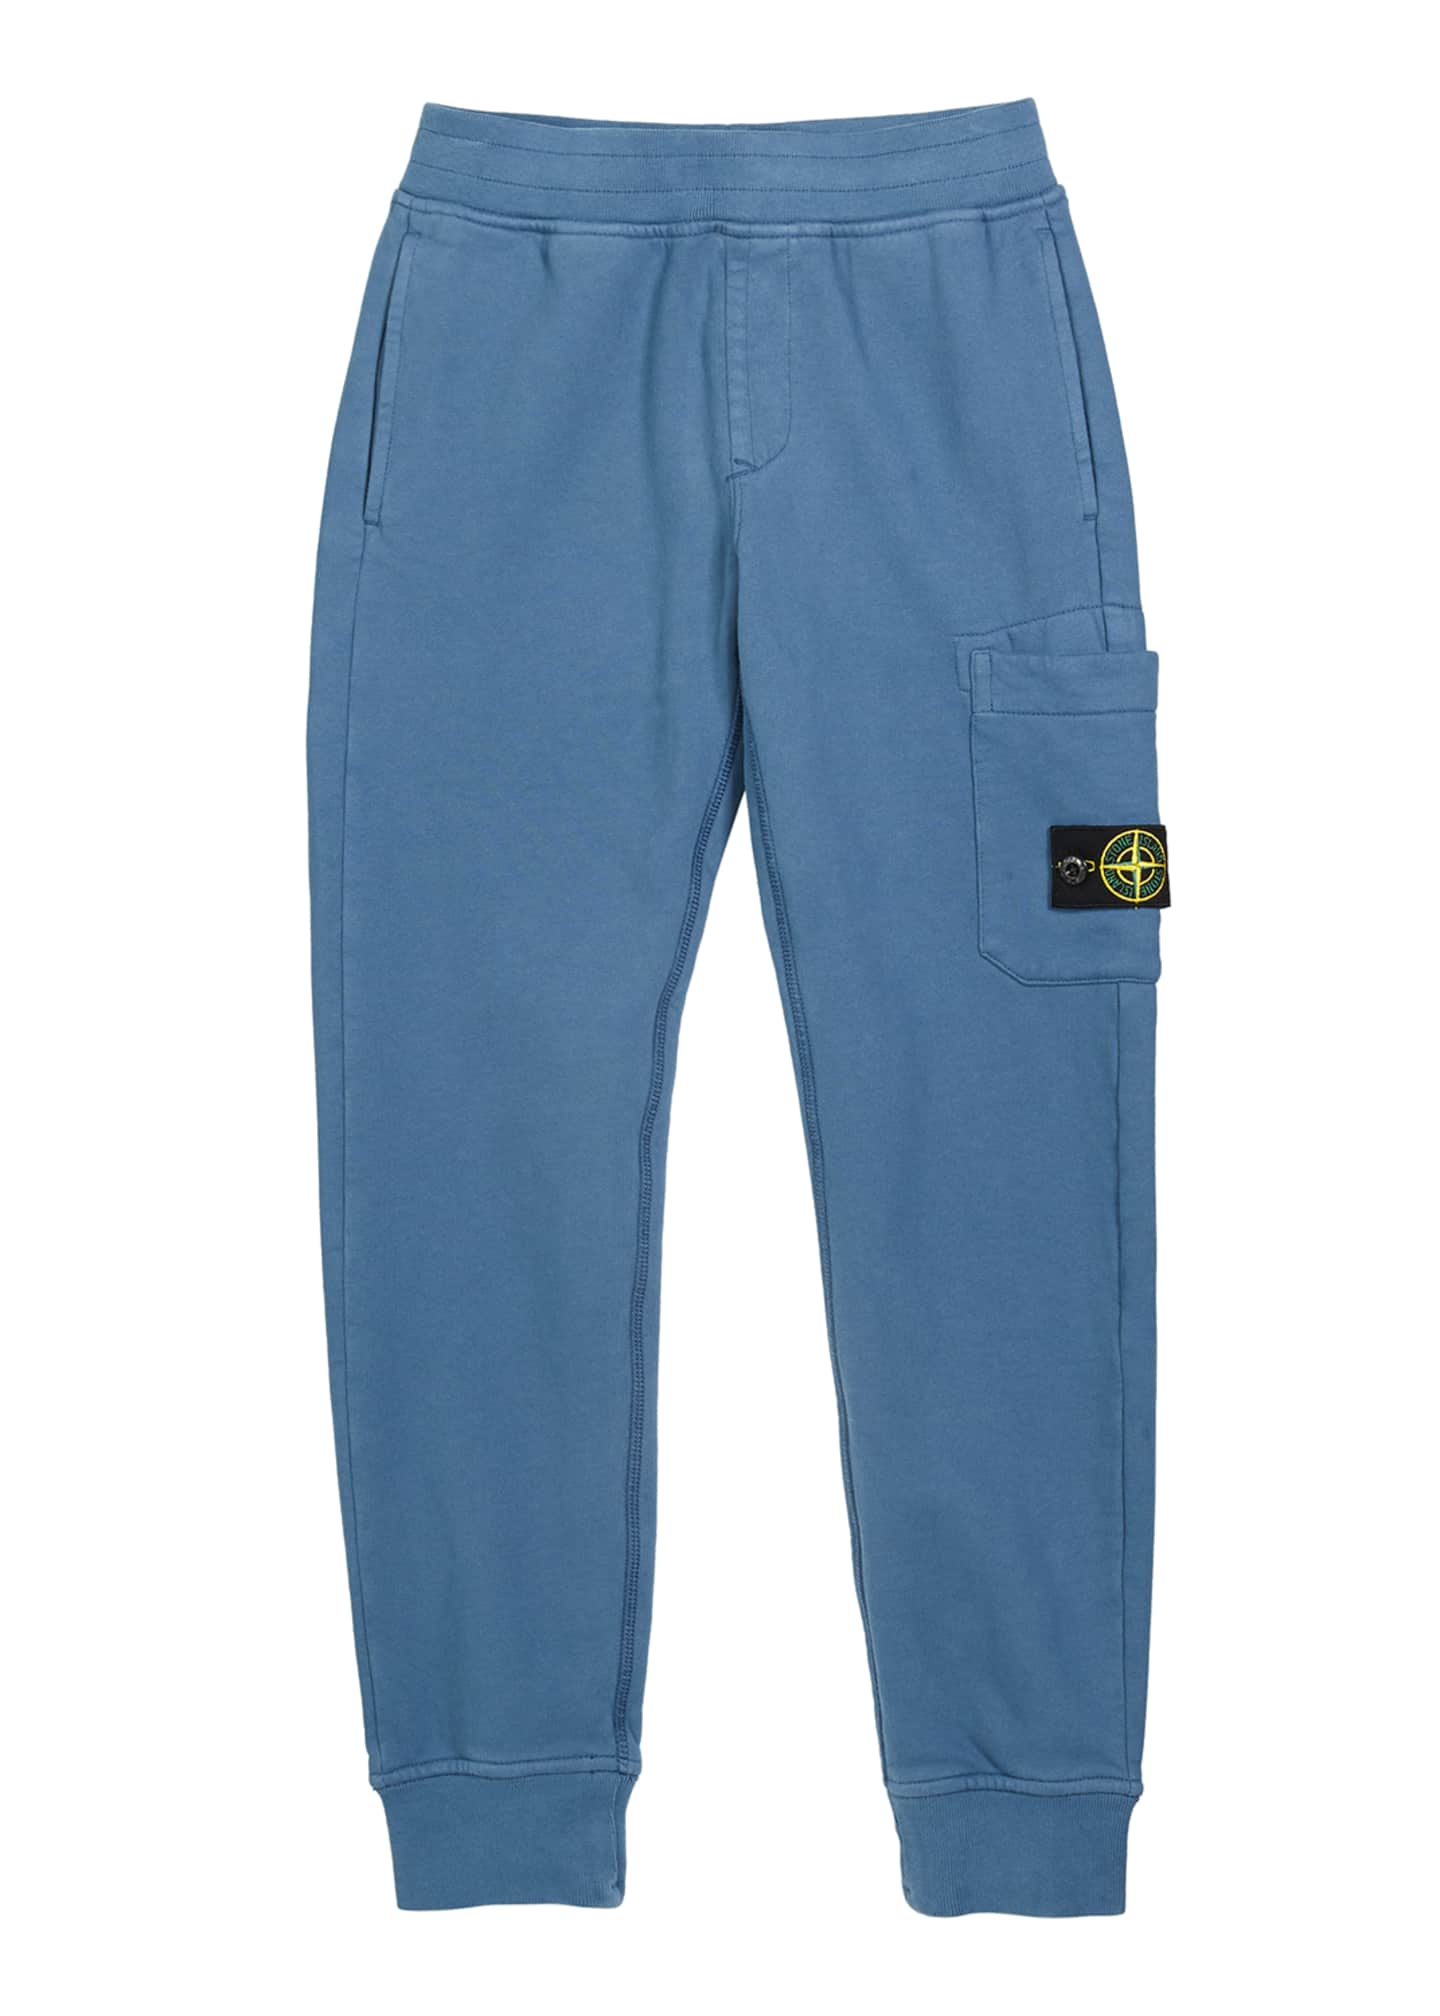 Stone Island Boy's Sweatpants w/ Thigh Pocket &